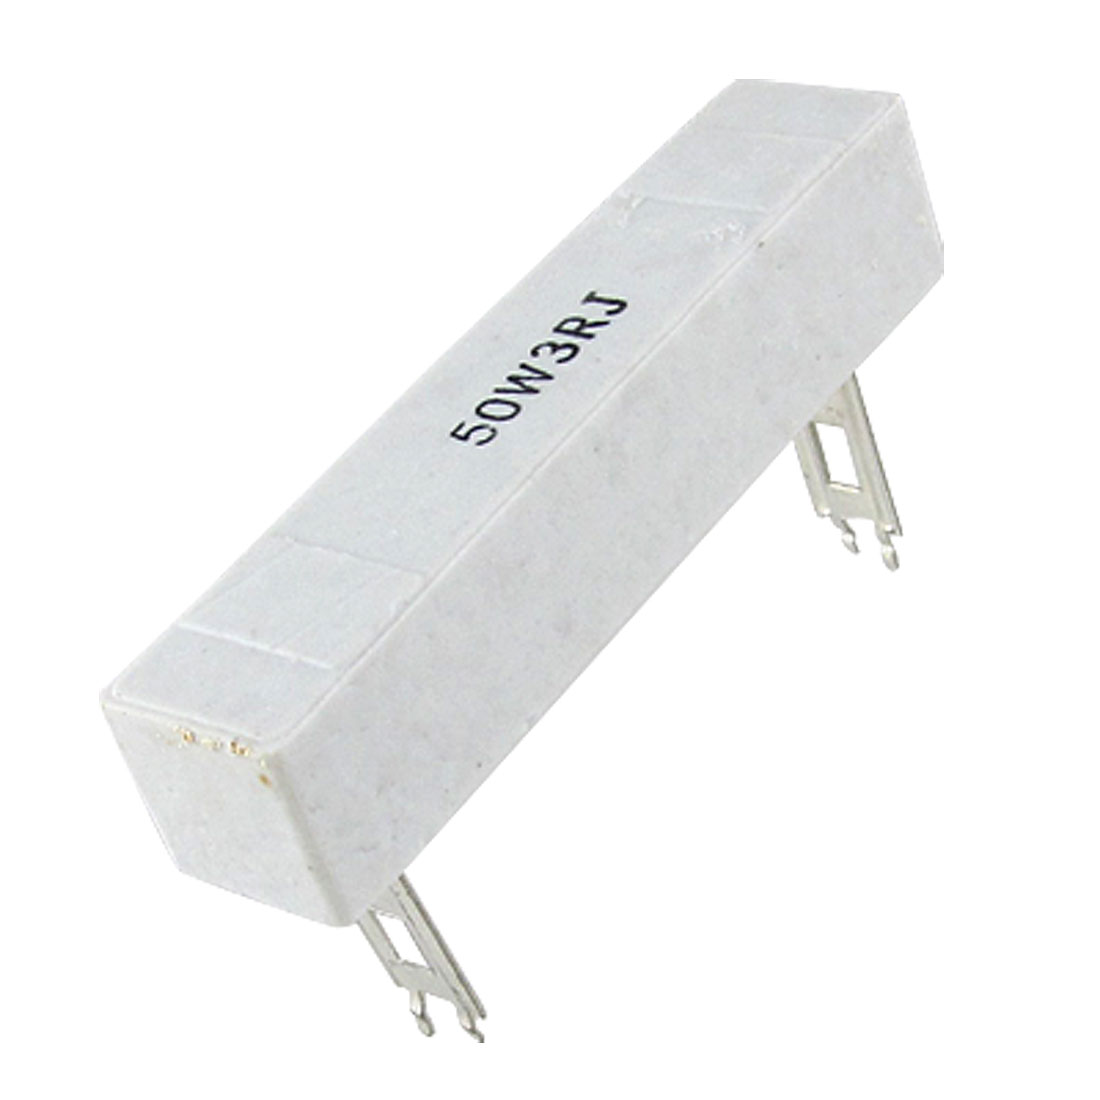 3 Ohm 5% 50W Watt Wirewound Ceramic Cement Resistor